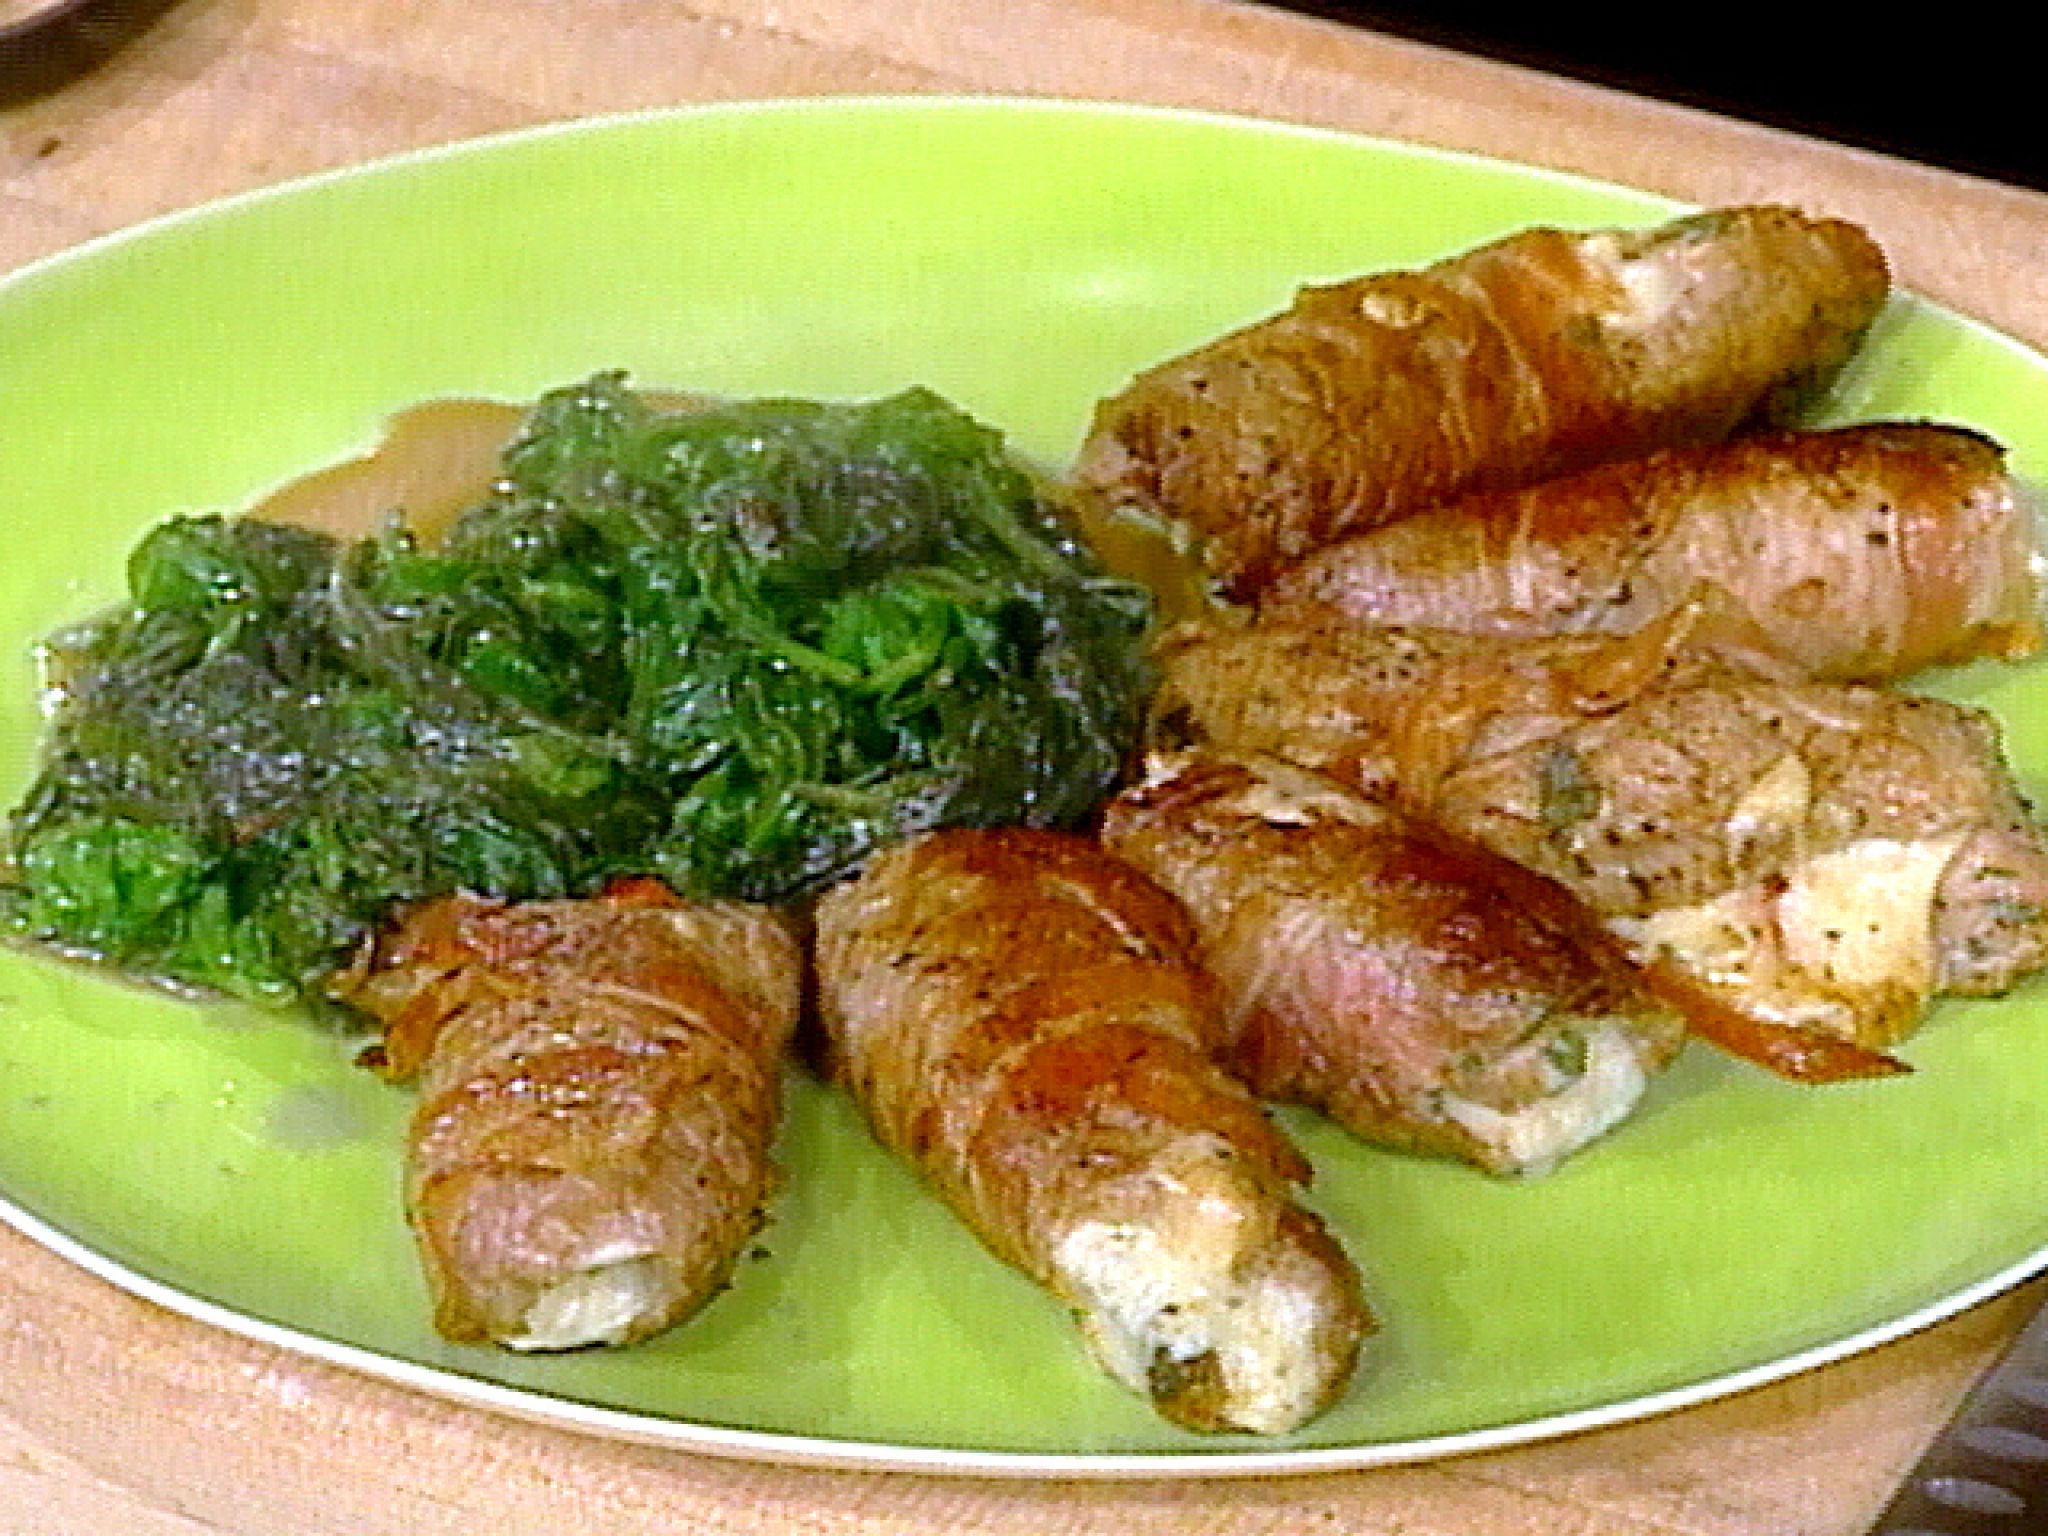 Veal rolls with pancetta recipe recipes foods and veal recipes main dishes veal rolls with pancetta recipe from rachael ray via food network forumfinder Image collections